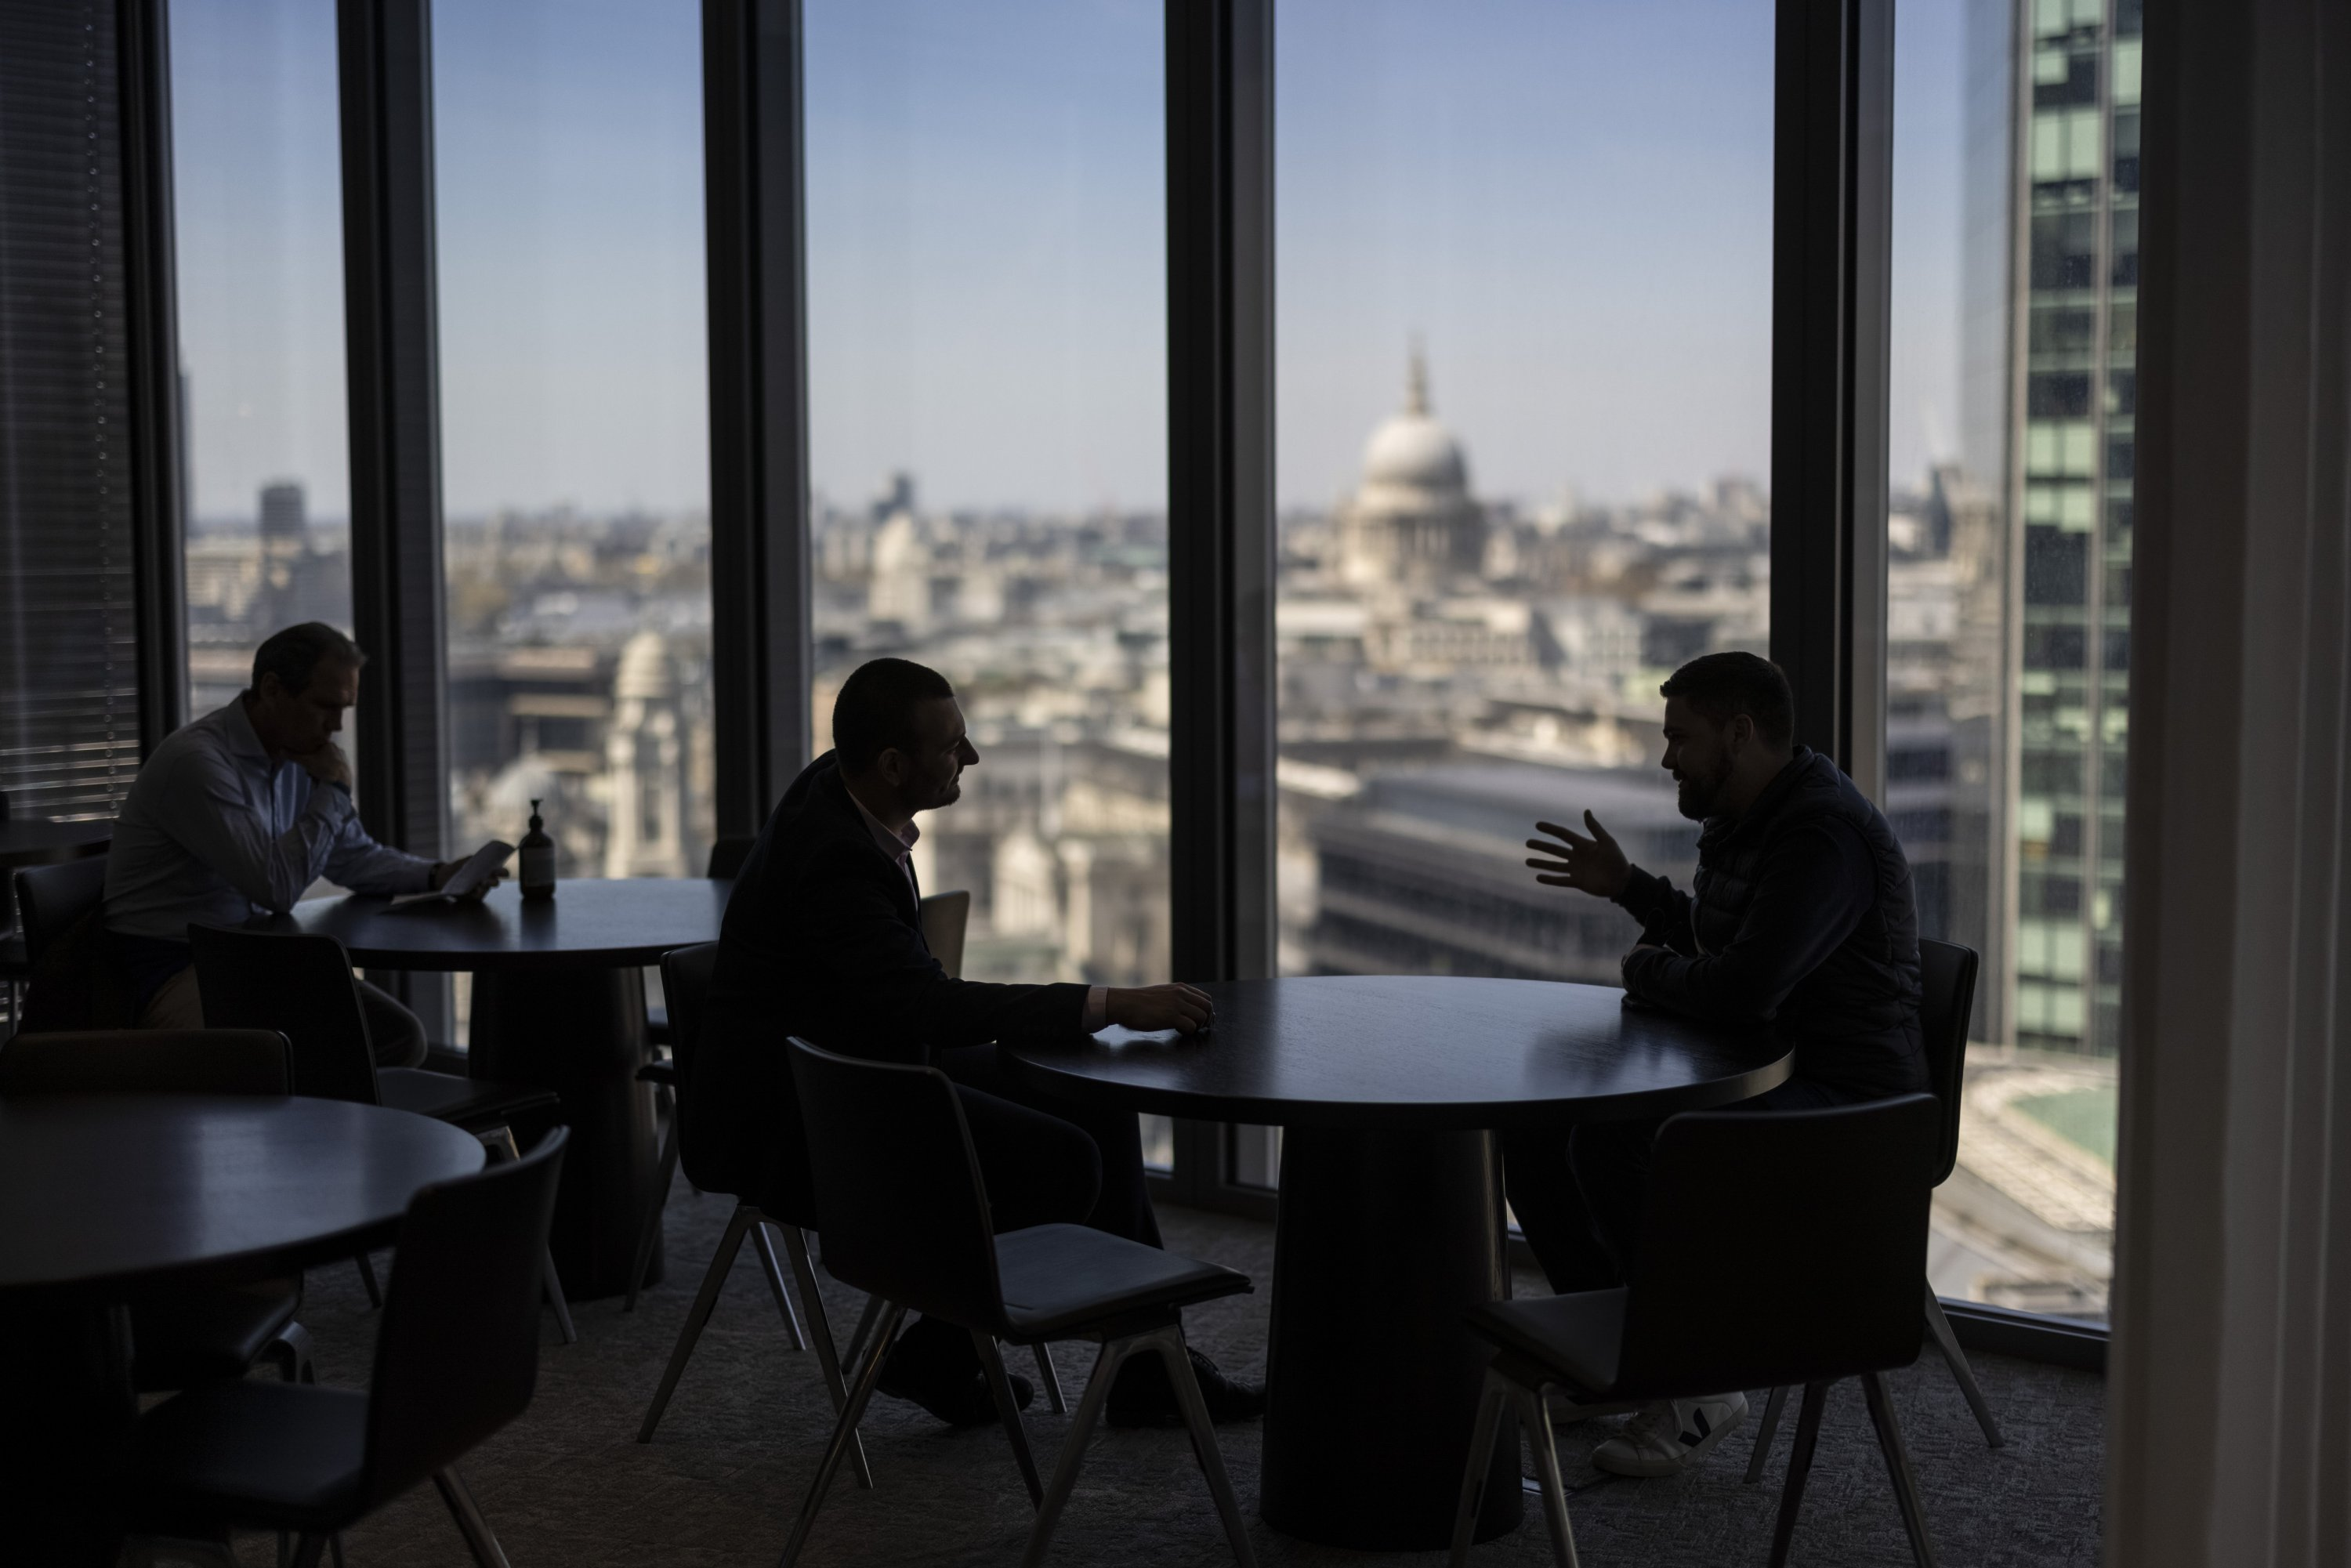 Office workers sit in view of St Paul's Cathedral in the City of London, U.K., on Monday, April 26, 2021. (Getty Images)